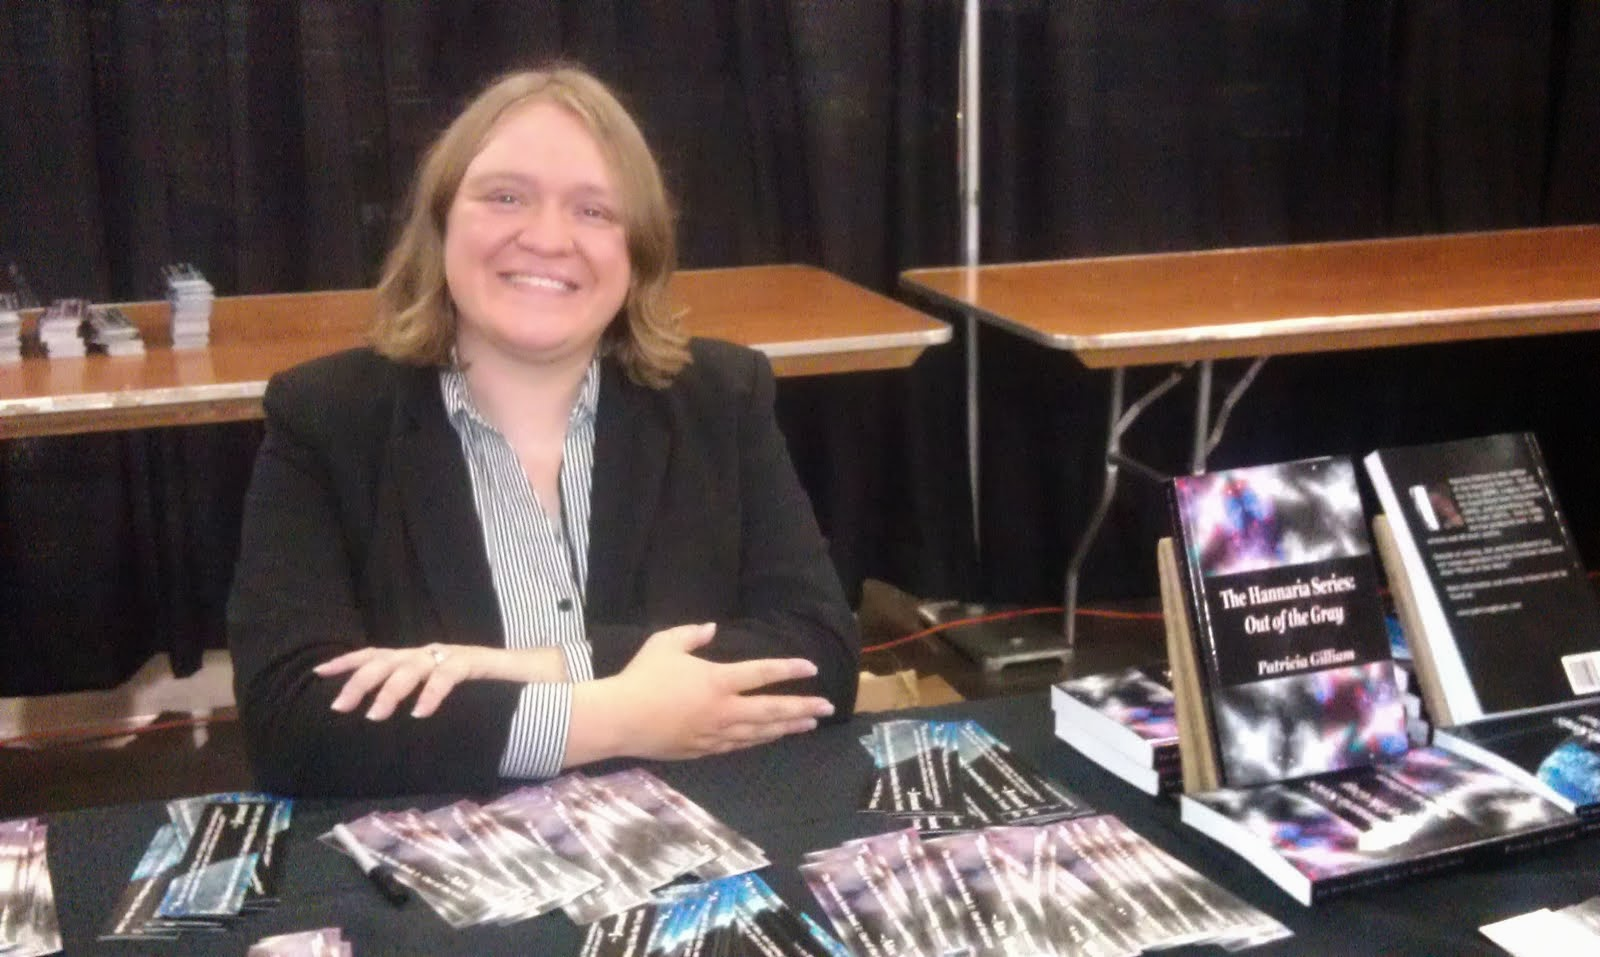 Patricia Gilliam at Fanboy Expo 2012